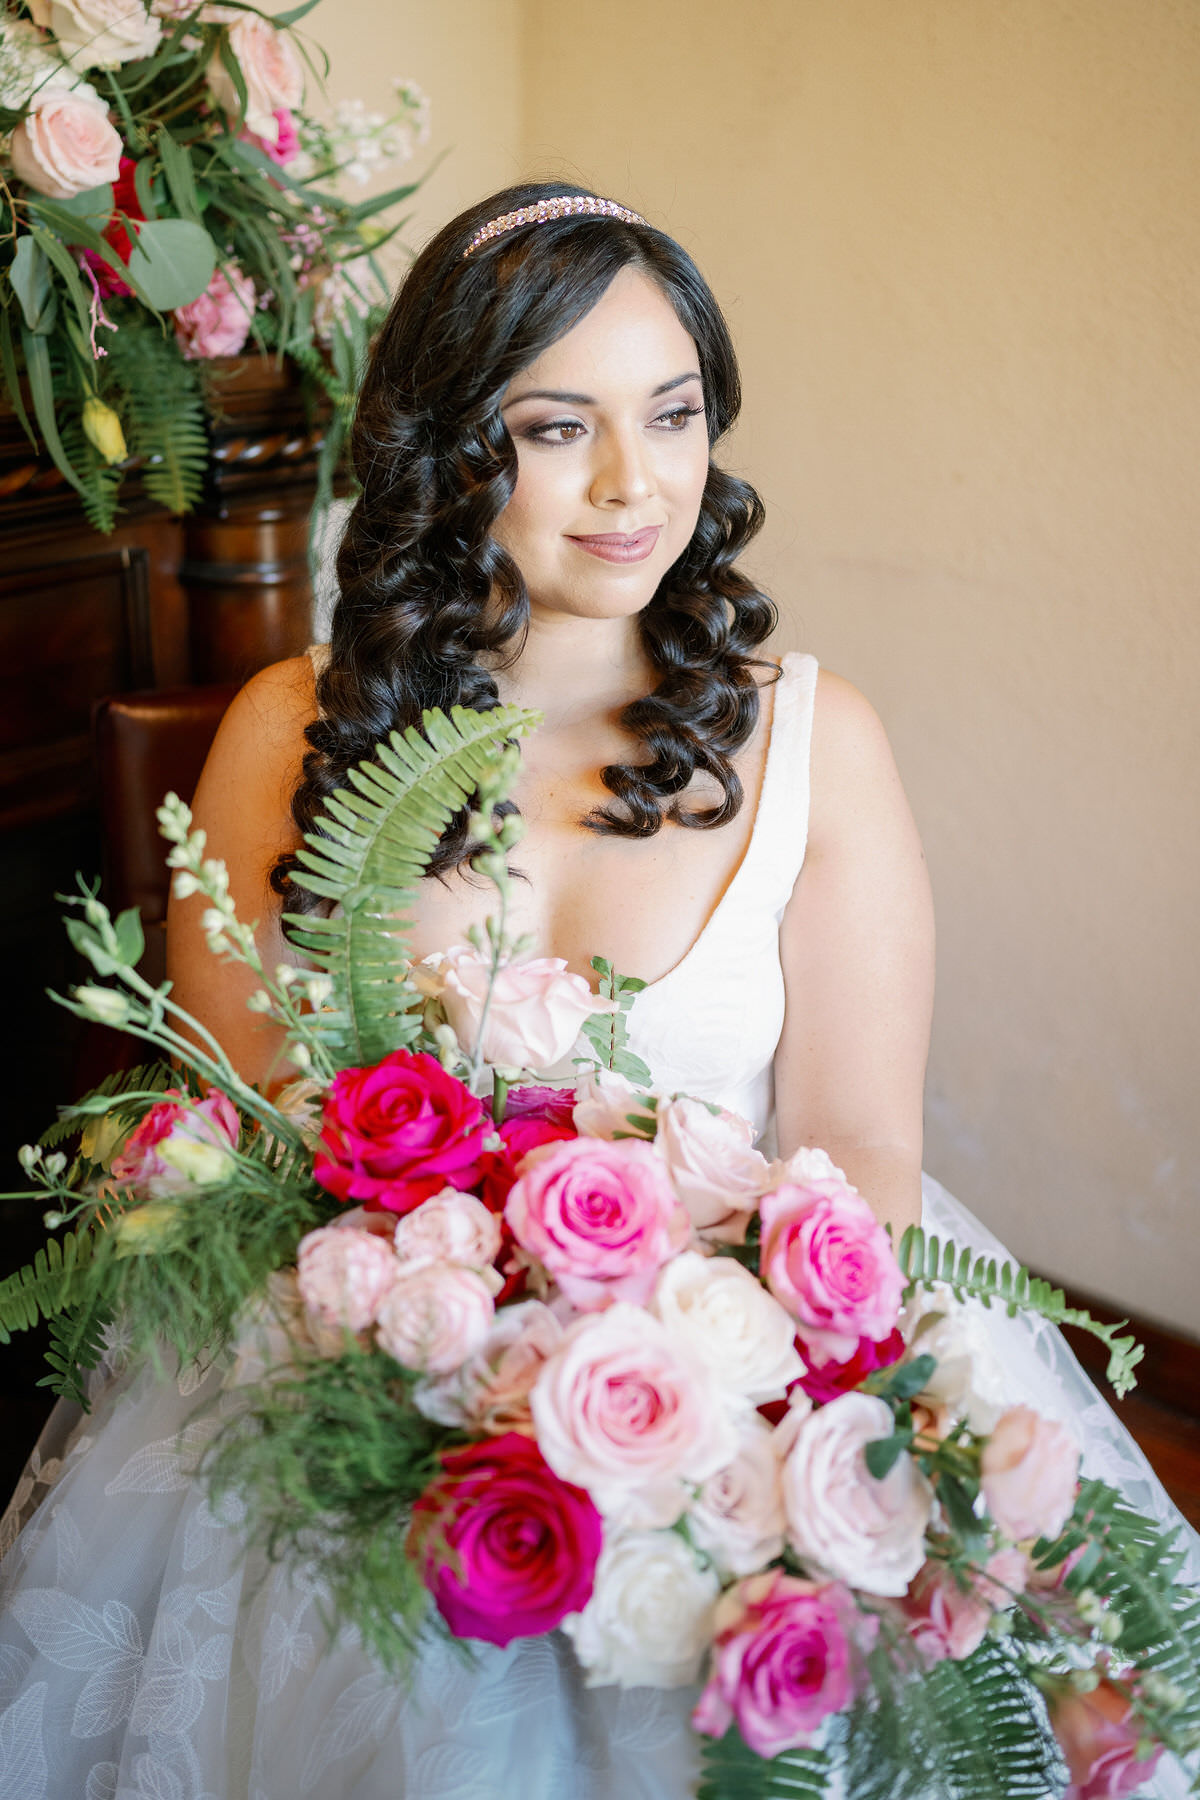 pink wedding bouquet with roses - Peony Park Photography